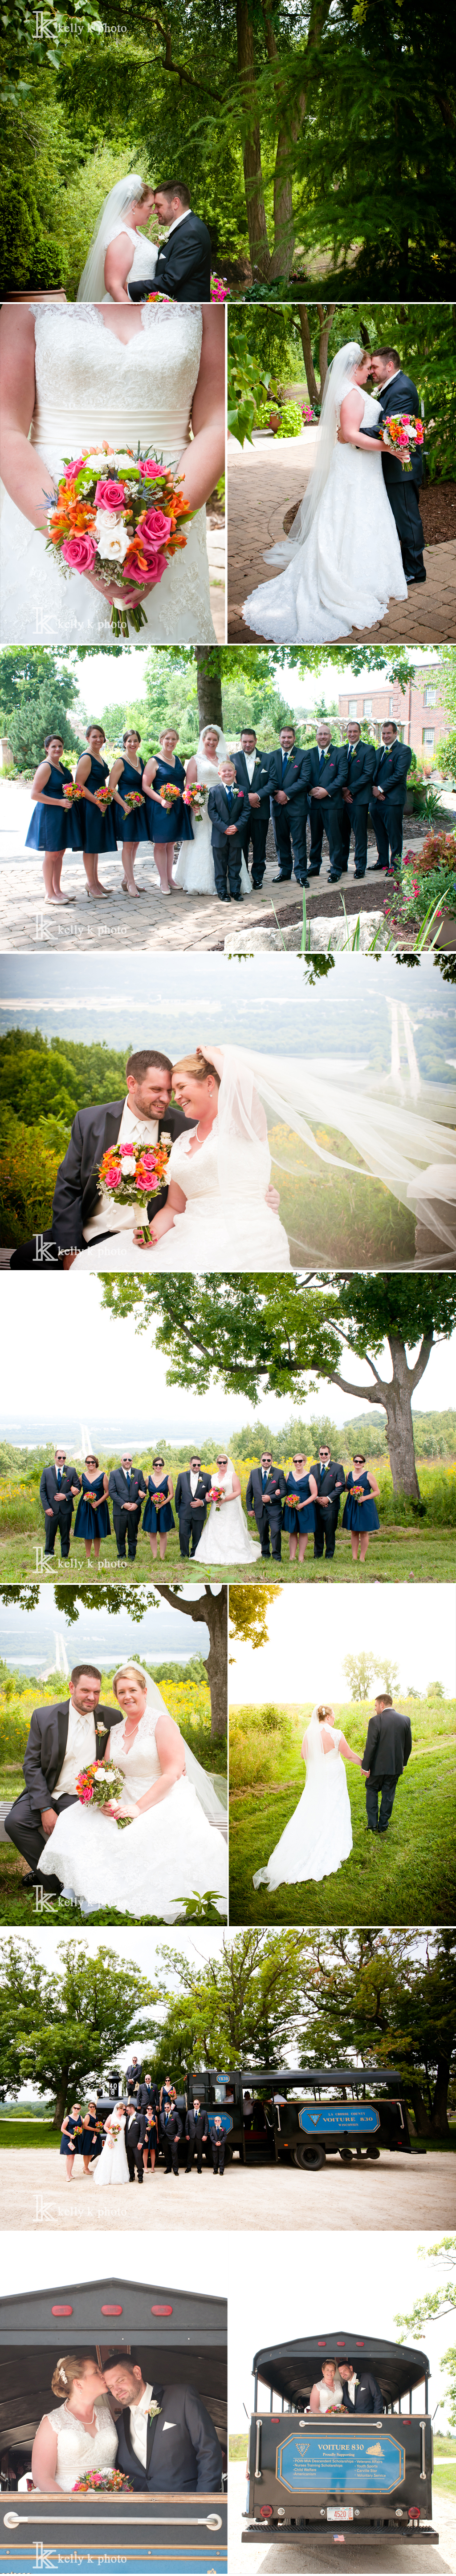 SpindlerWedding2